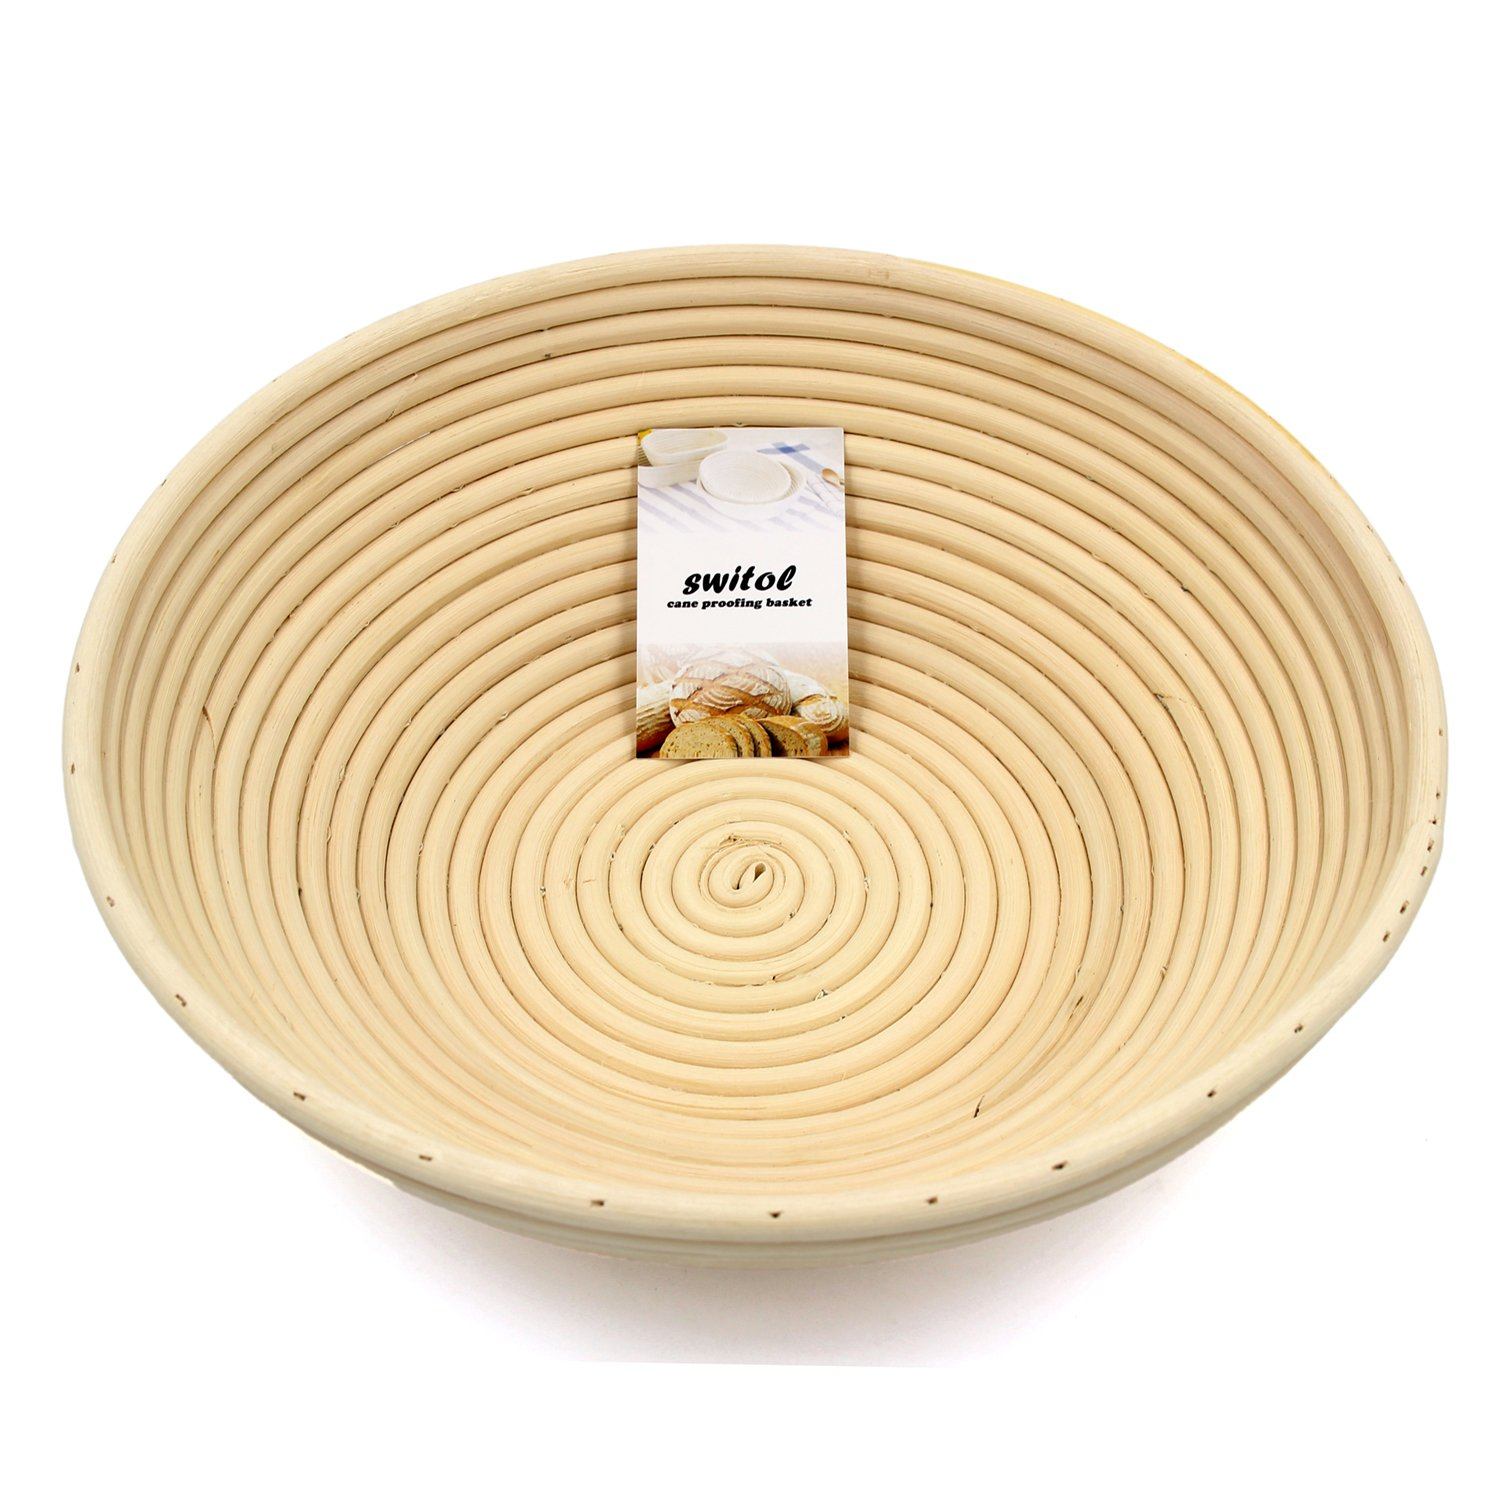 Switol 12 inch Banneton Proofing Basket, Hand-Made Dough Basket Made from Cane